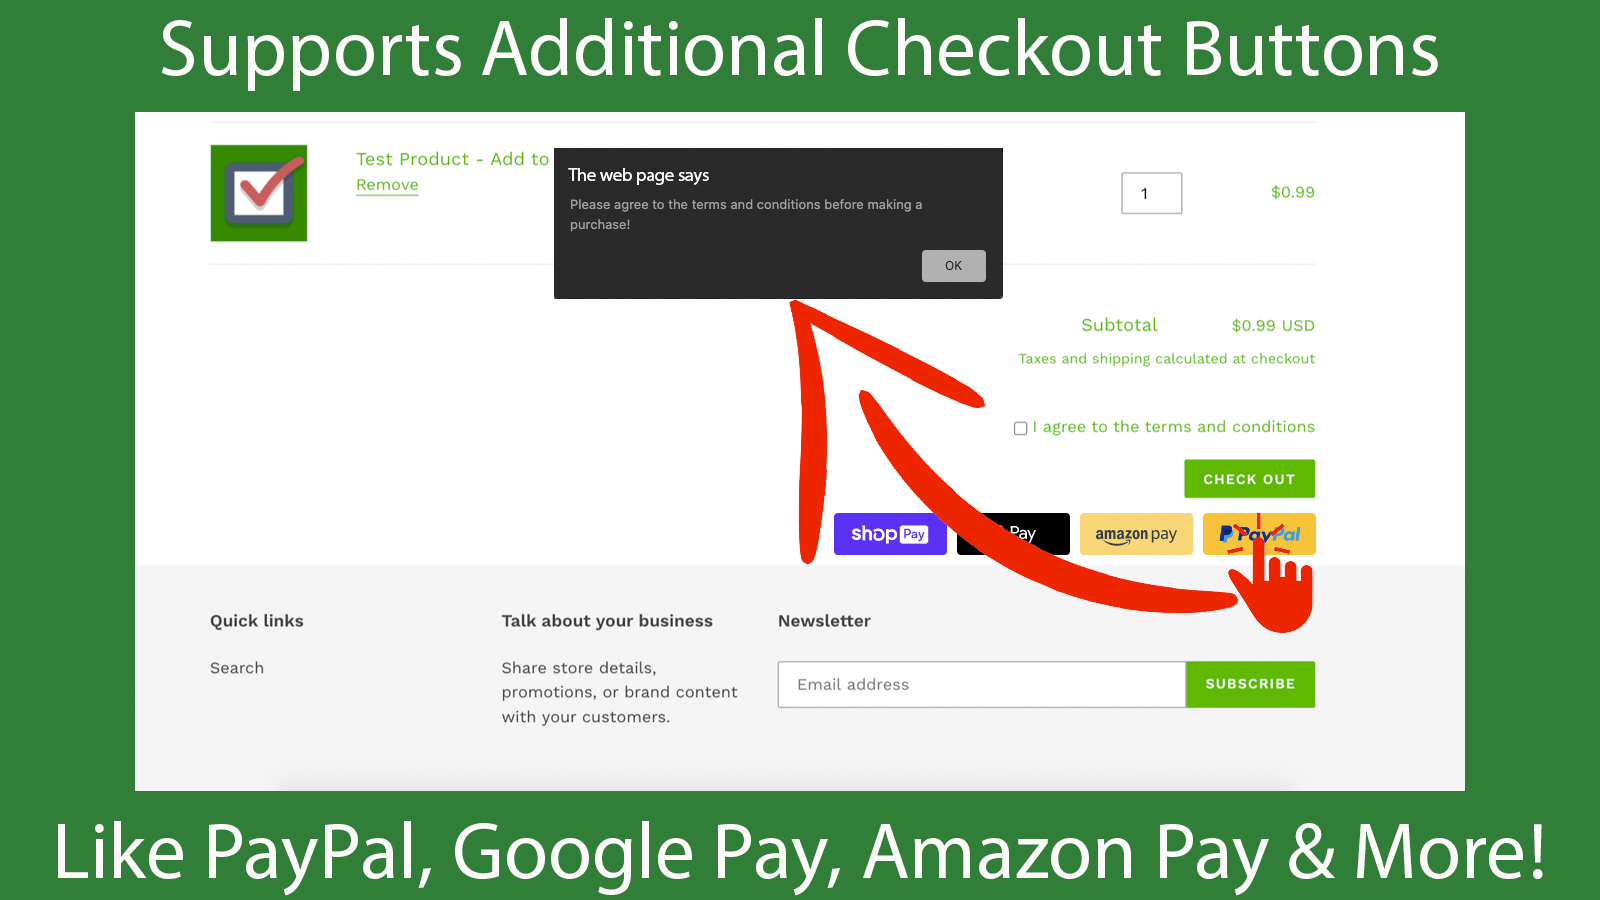 The app supports additional checkout buttons